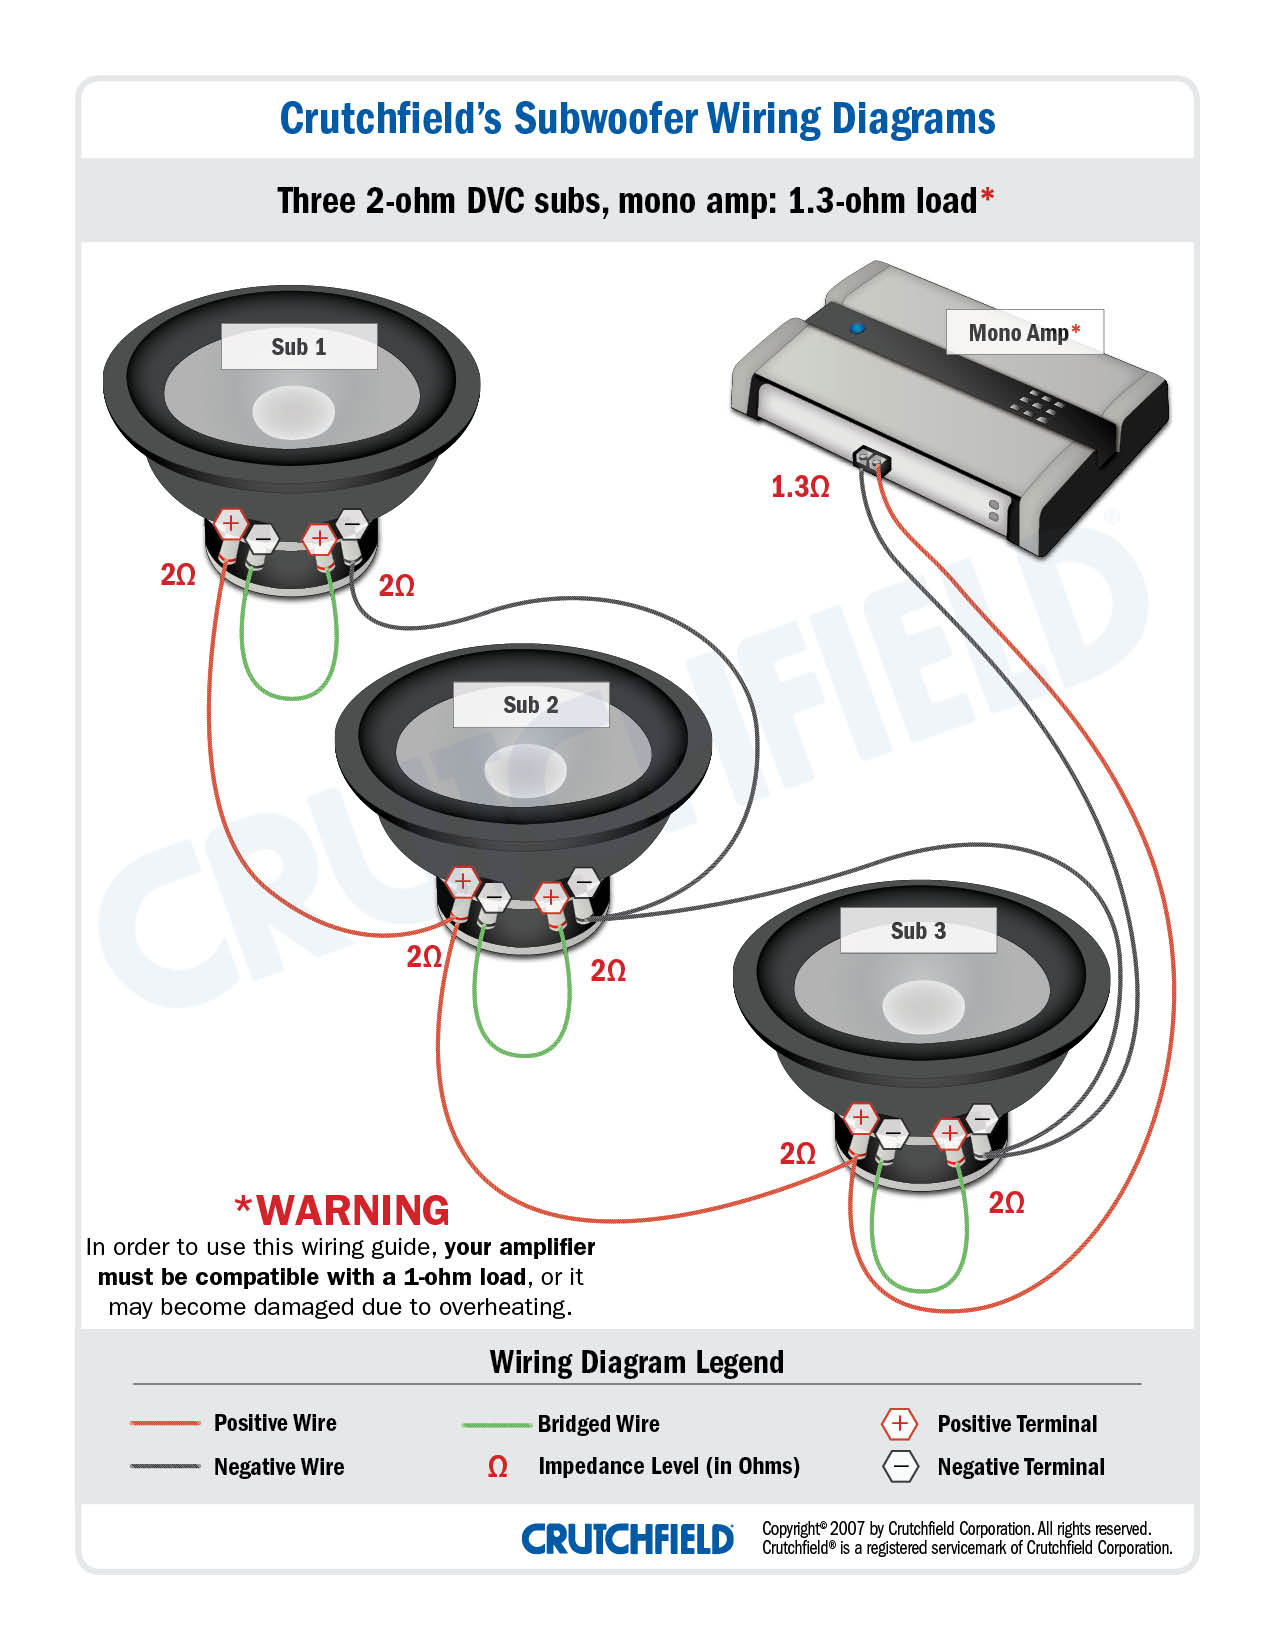 3 DVC 2 ohm mono low imp wiring subwoofers what's all this about ohms? crutchfield sub wiring diagrams at eliteediting.co